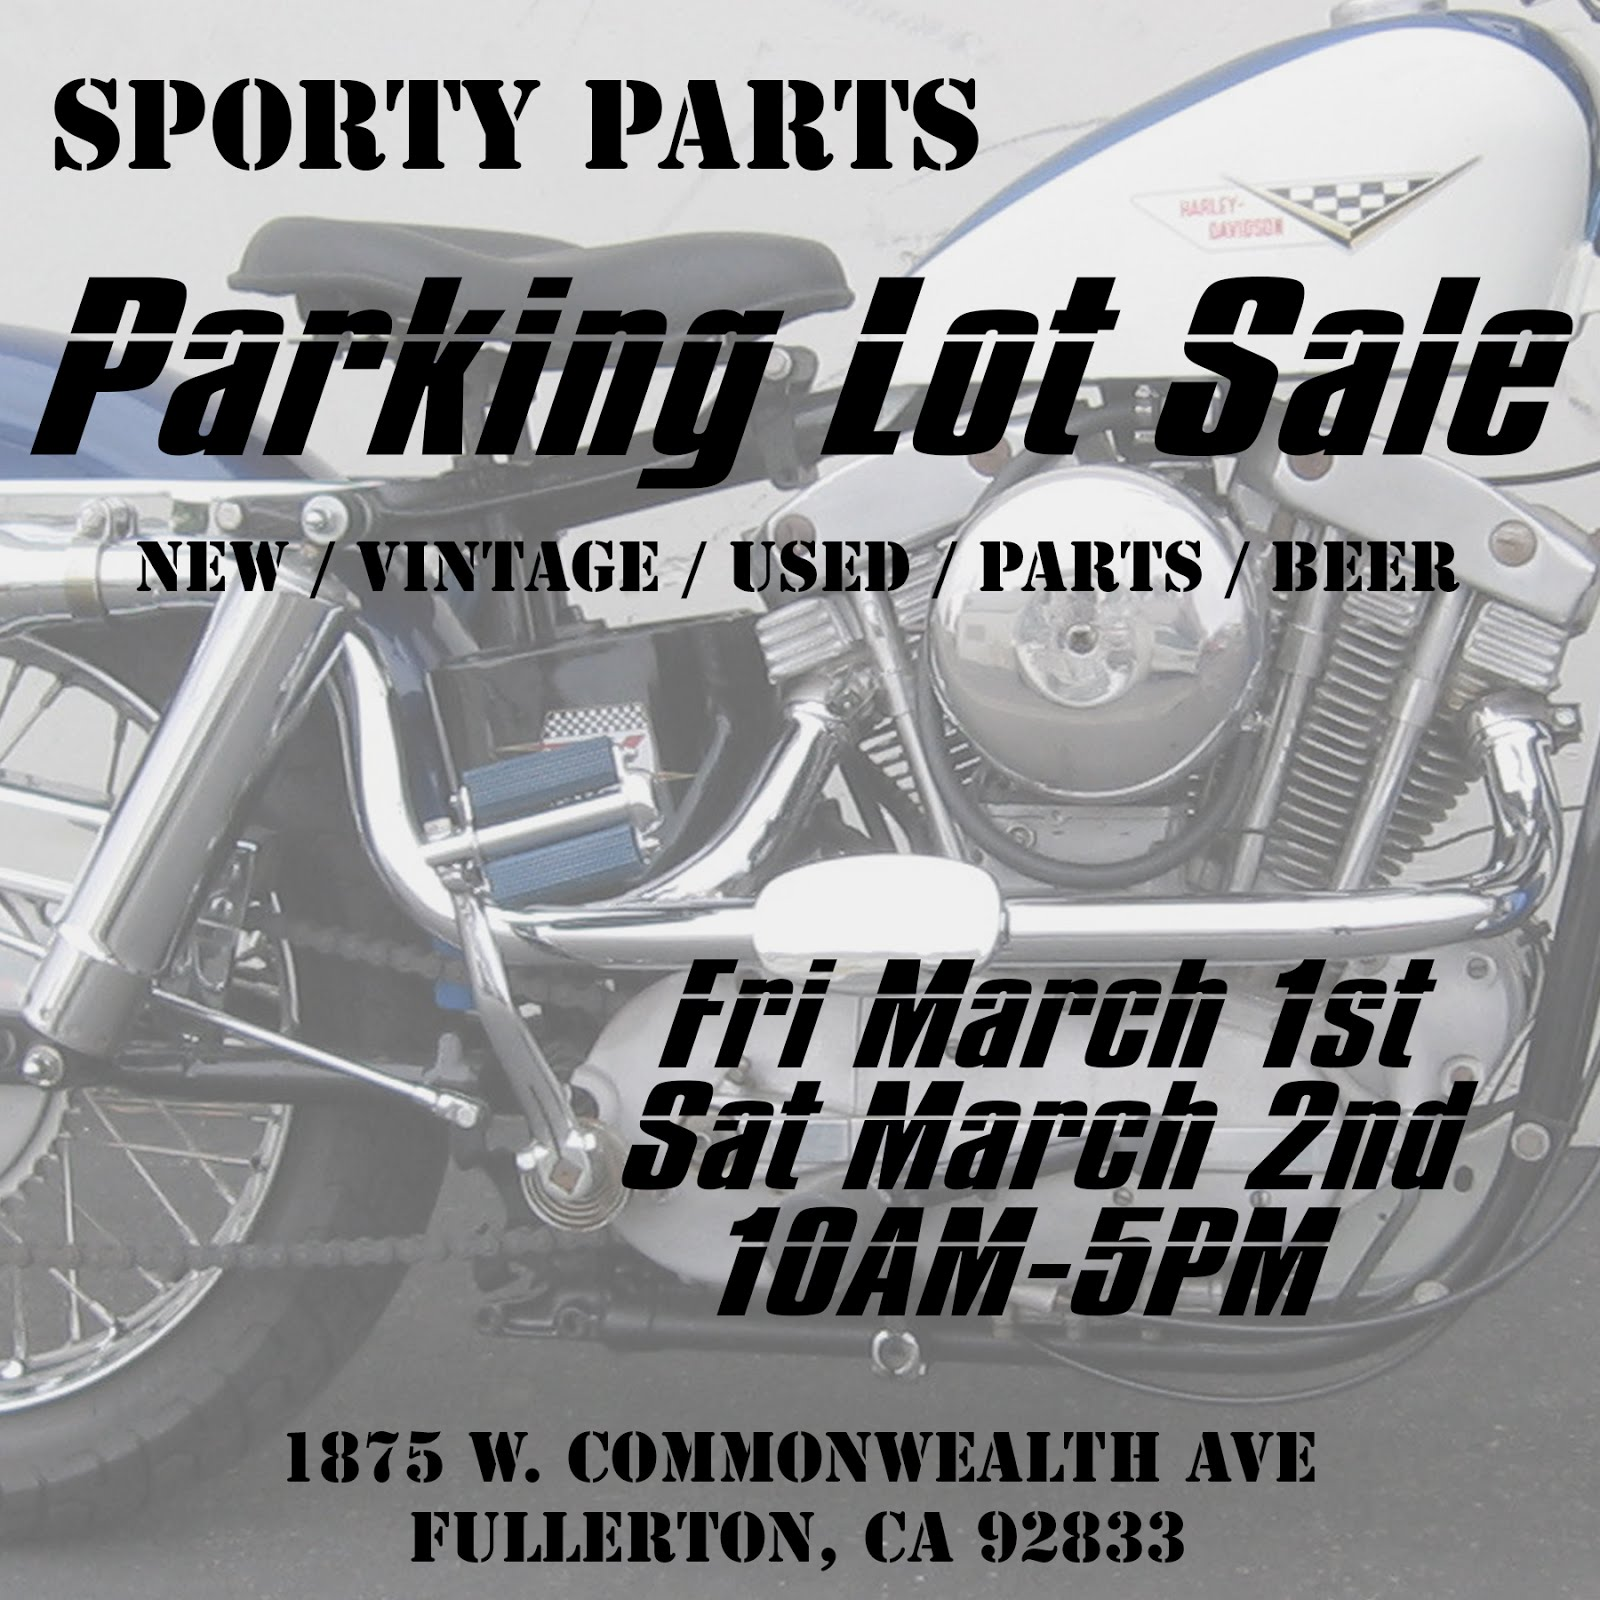 Sporty Parts Parking Lot Sale